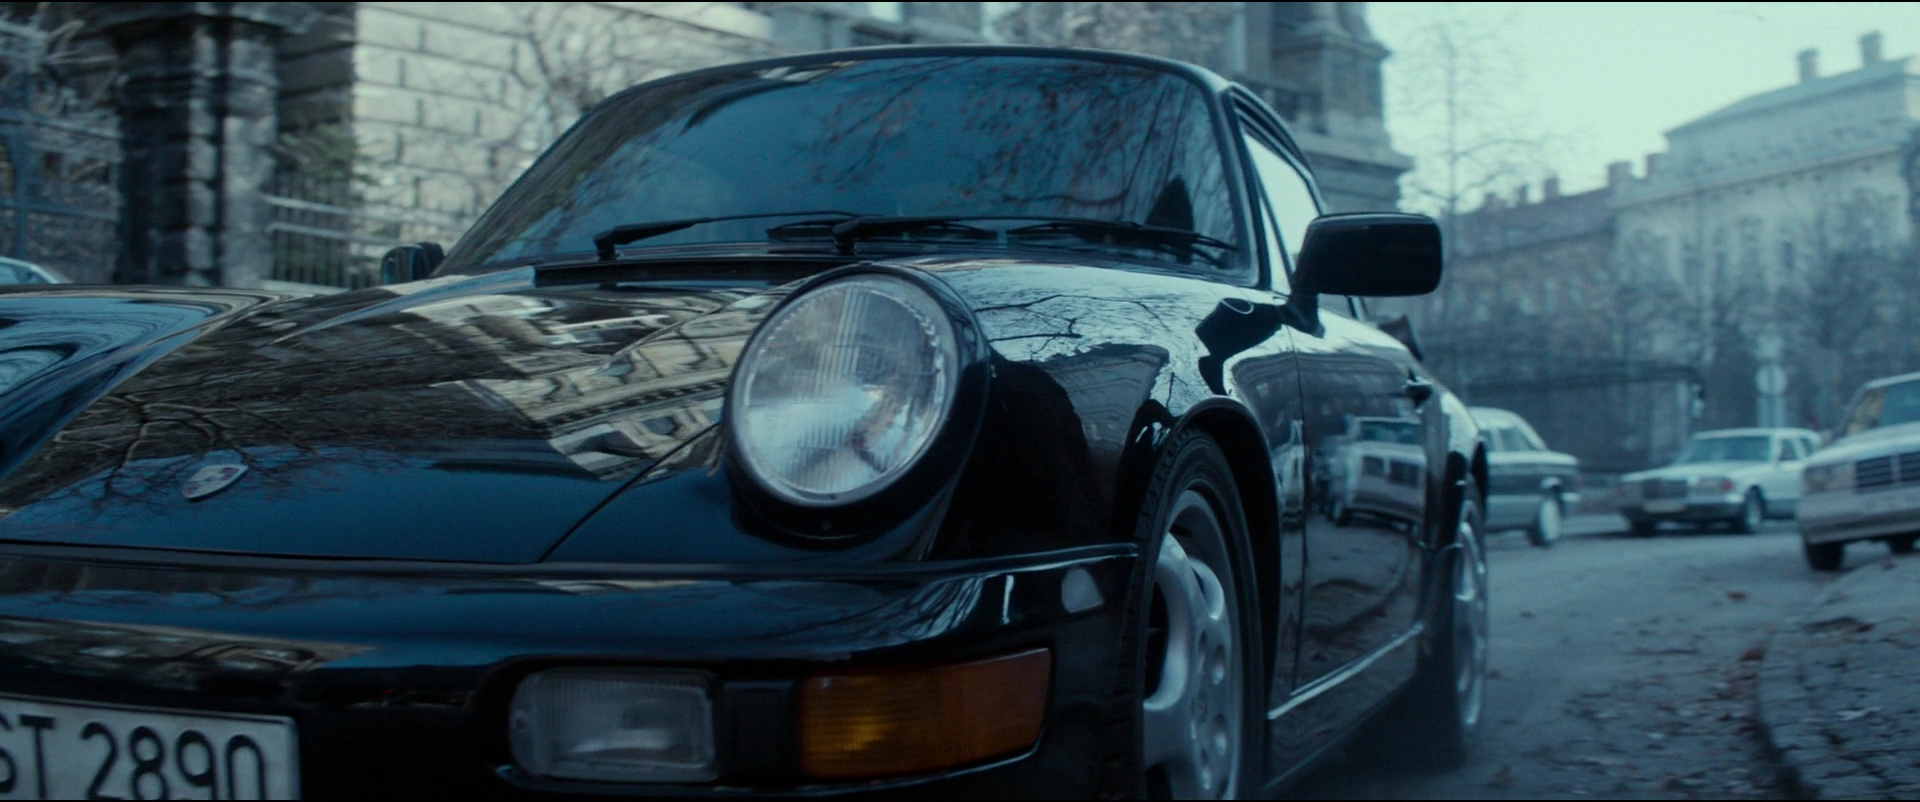 Porsche 911 Carrera 964 Car Used By James Mcavoy In